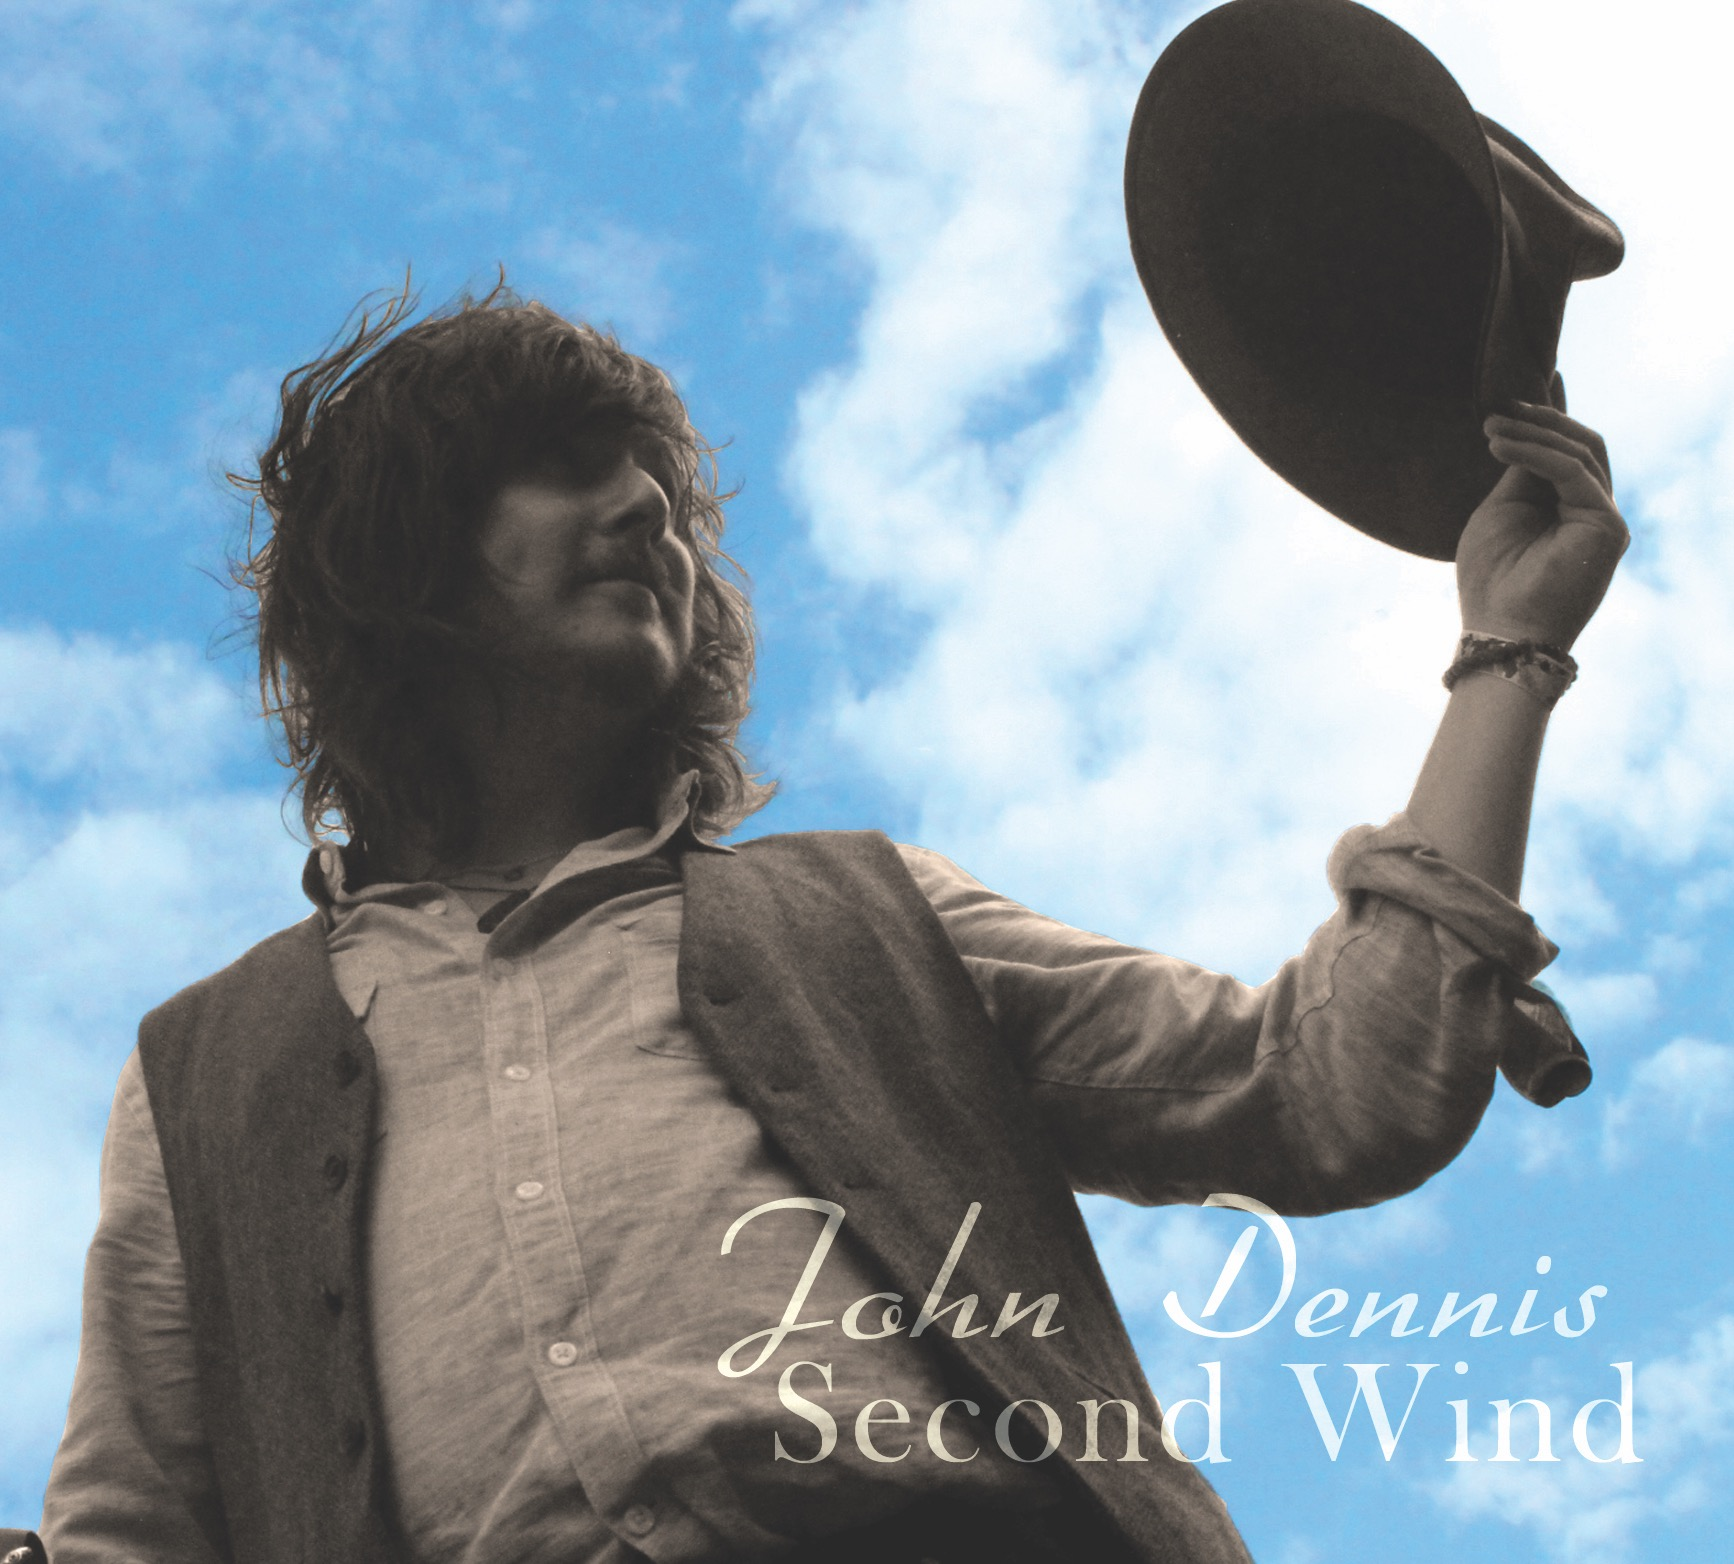 Second Wind Album cover